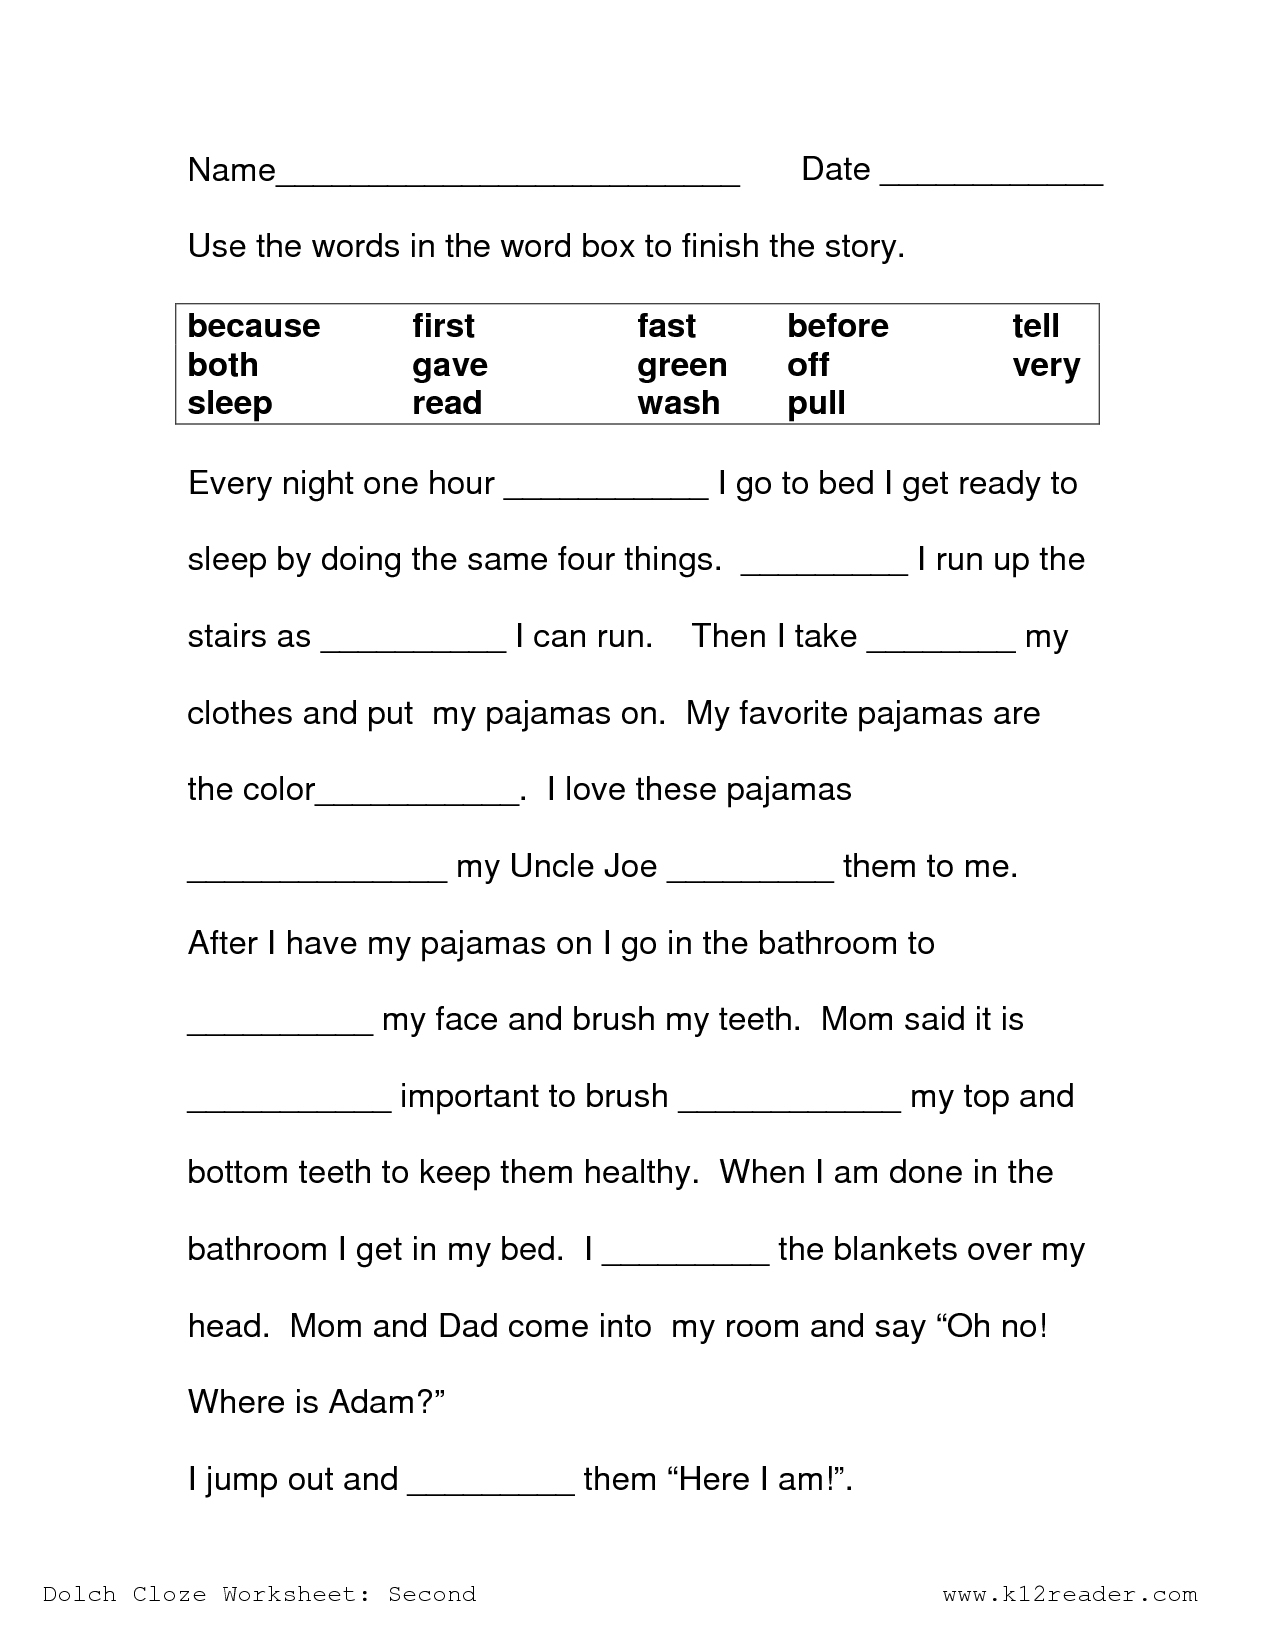 Math Worksheet: 2Nd Grade Science Worksheets Free Printable Easy | Printable Science Worksheets For 2Nd Grade